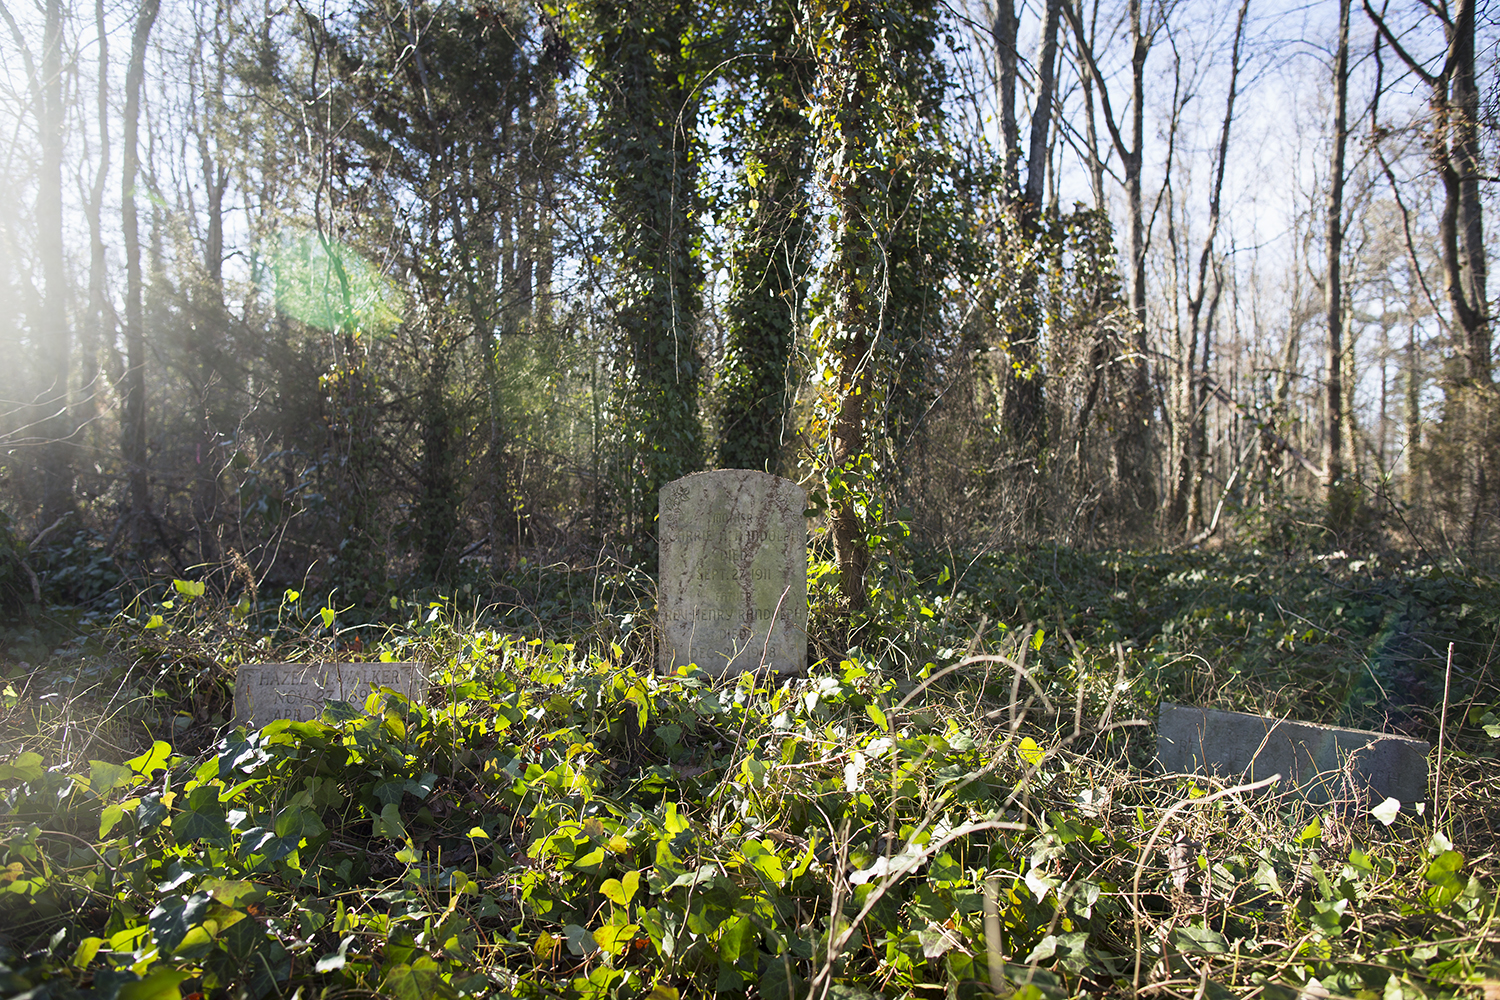 Graves of Hazel M. Walker (left), Carrie A, Randolph (center), and Rev, Henry Randolph (right), revealed by VCU students during East End Cemetery work day, Henrico County/Richmond, Virginia, January 31, 2015. ©brianpalmer.photos 2015